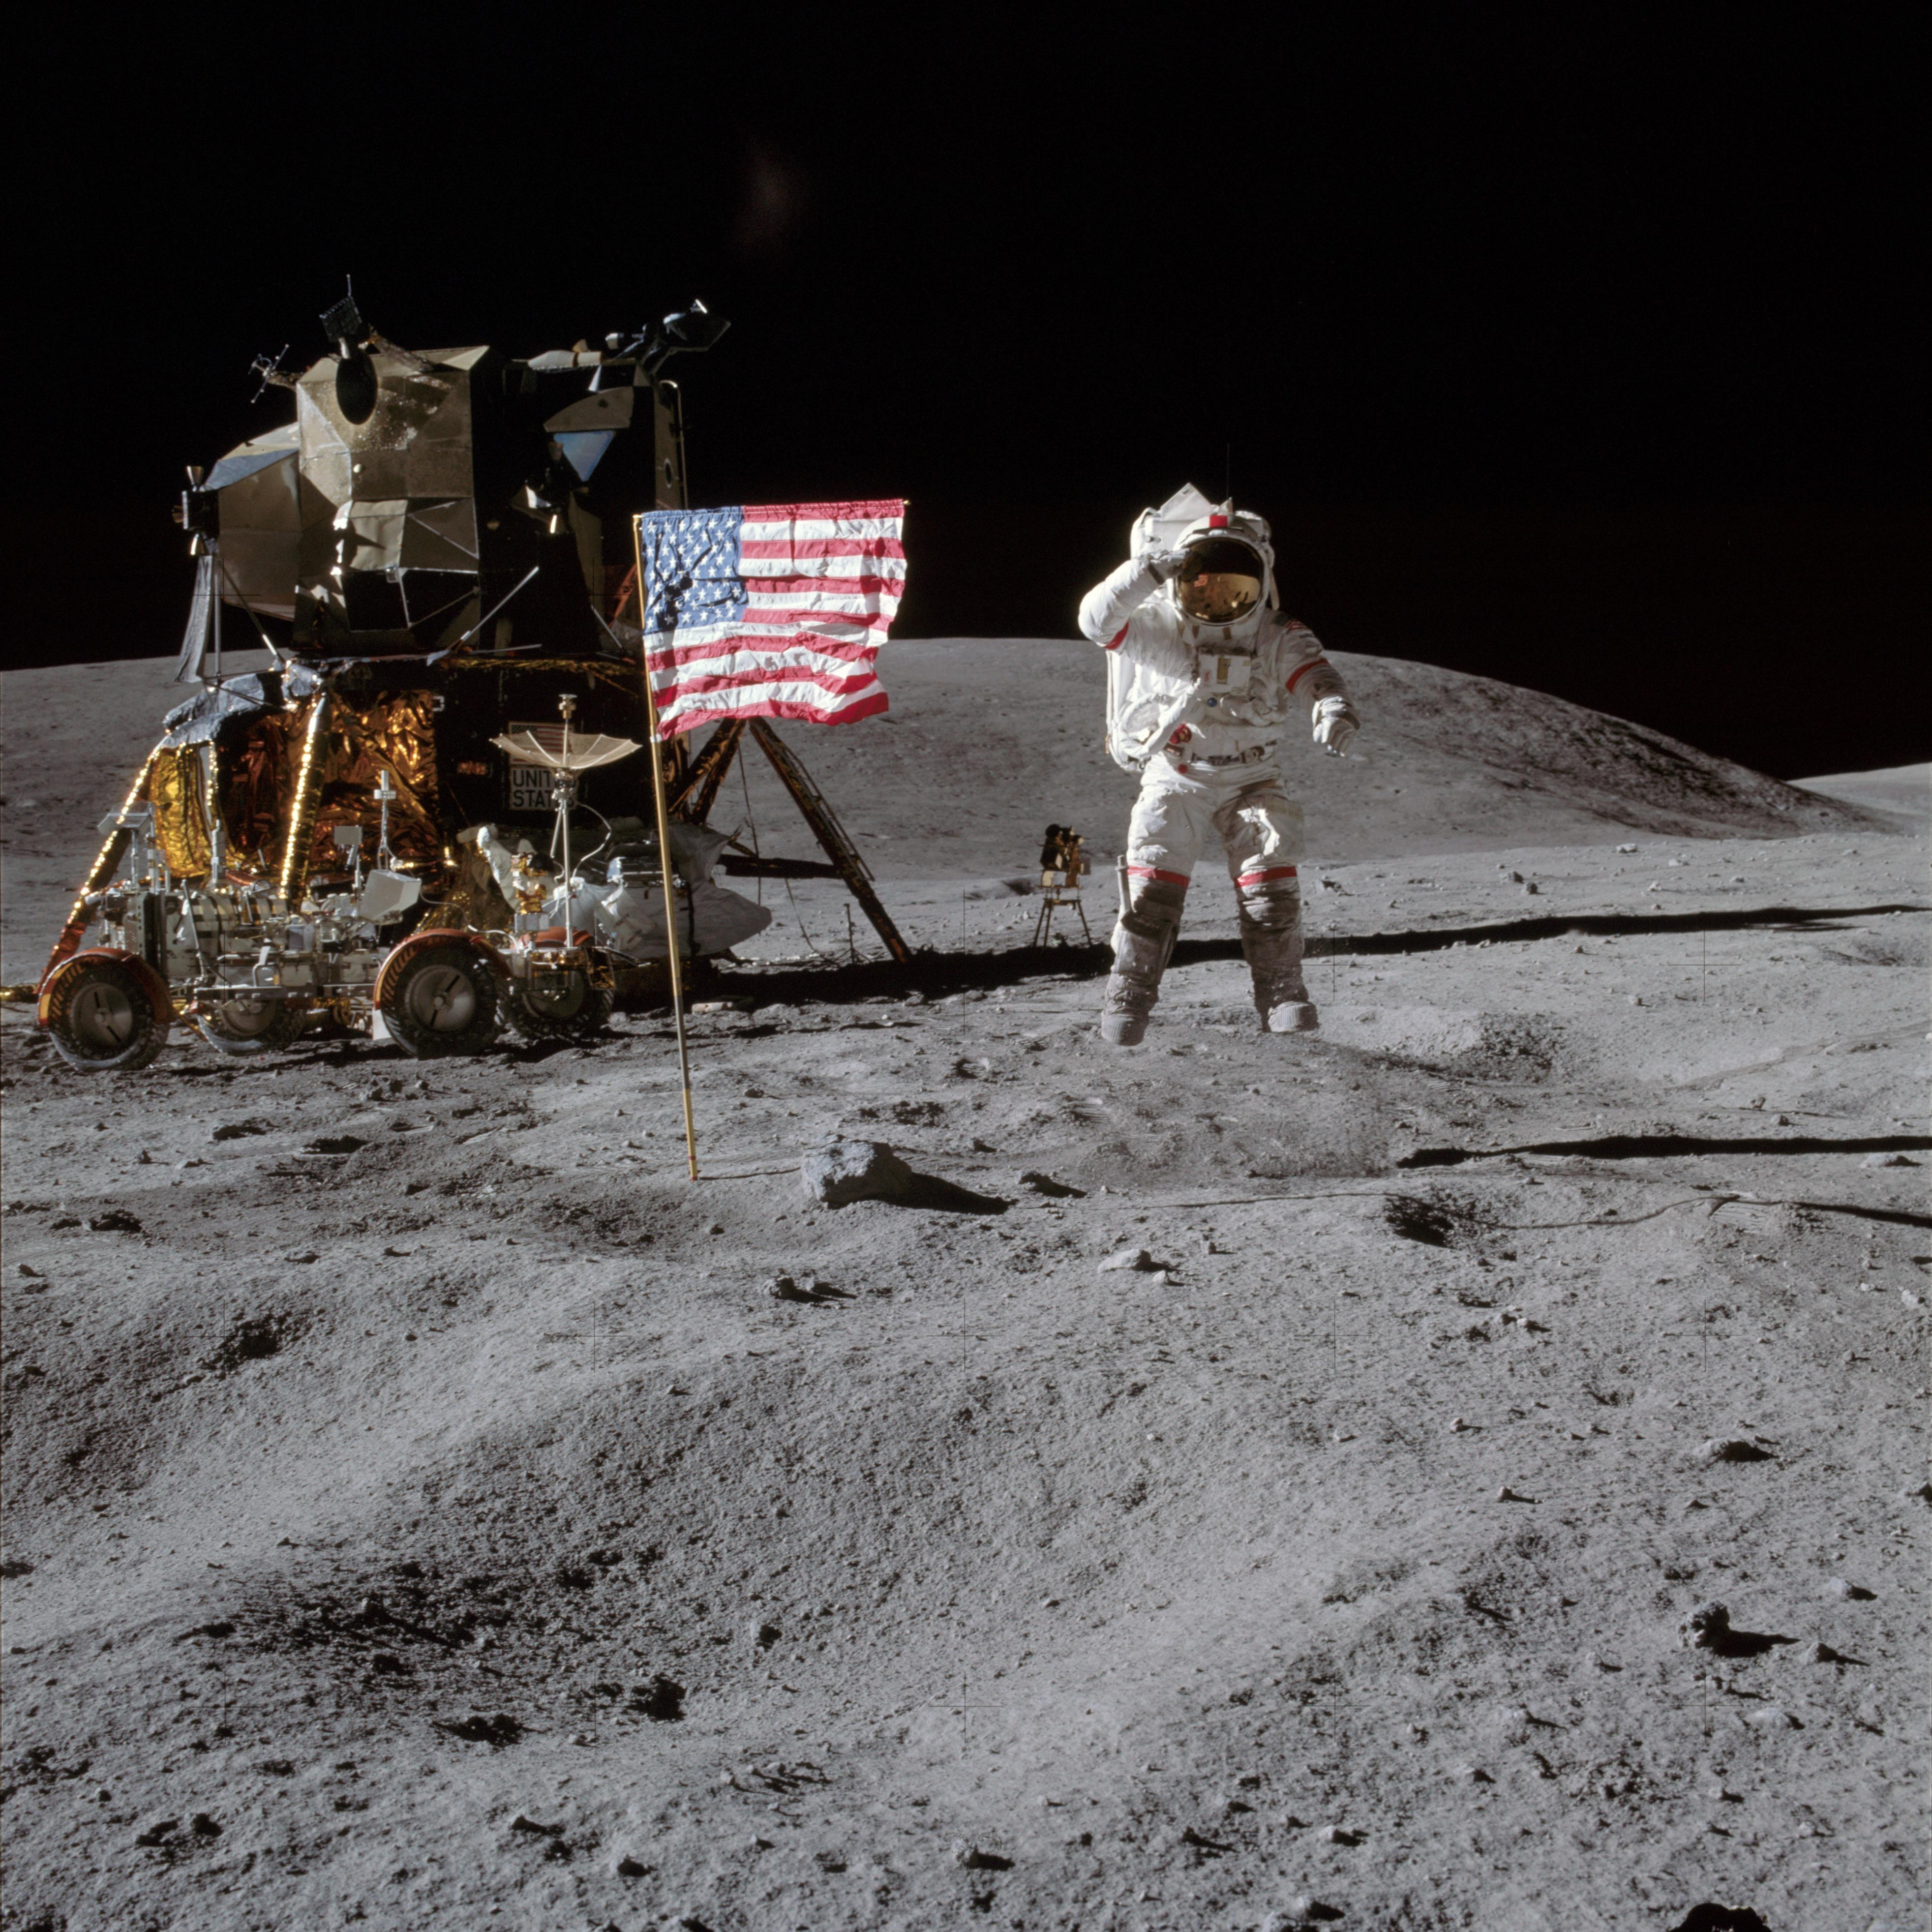 astronauts to go to moon - photo #12